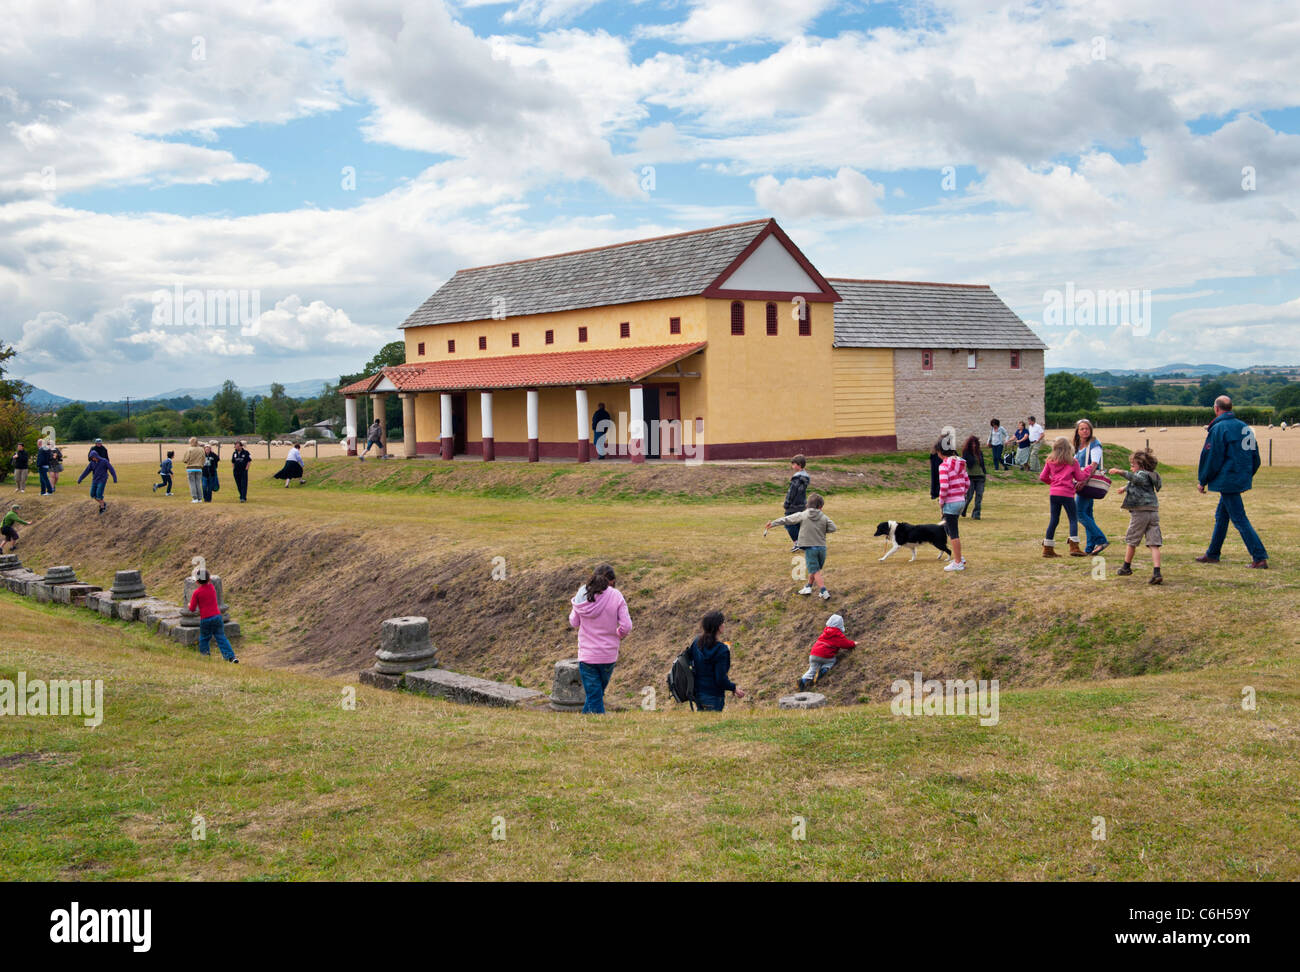 Re-construction of Roman town house villa at Wroxeter Roman city site, Shrewsbury, Shropshire, as seen in TV series - Stock Image